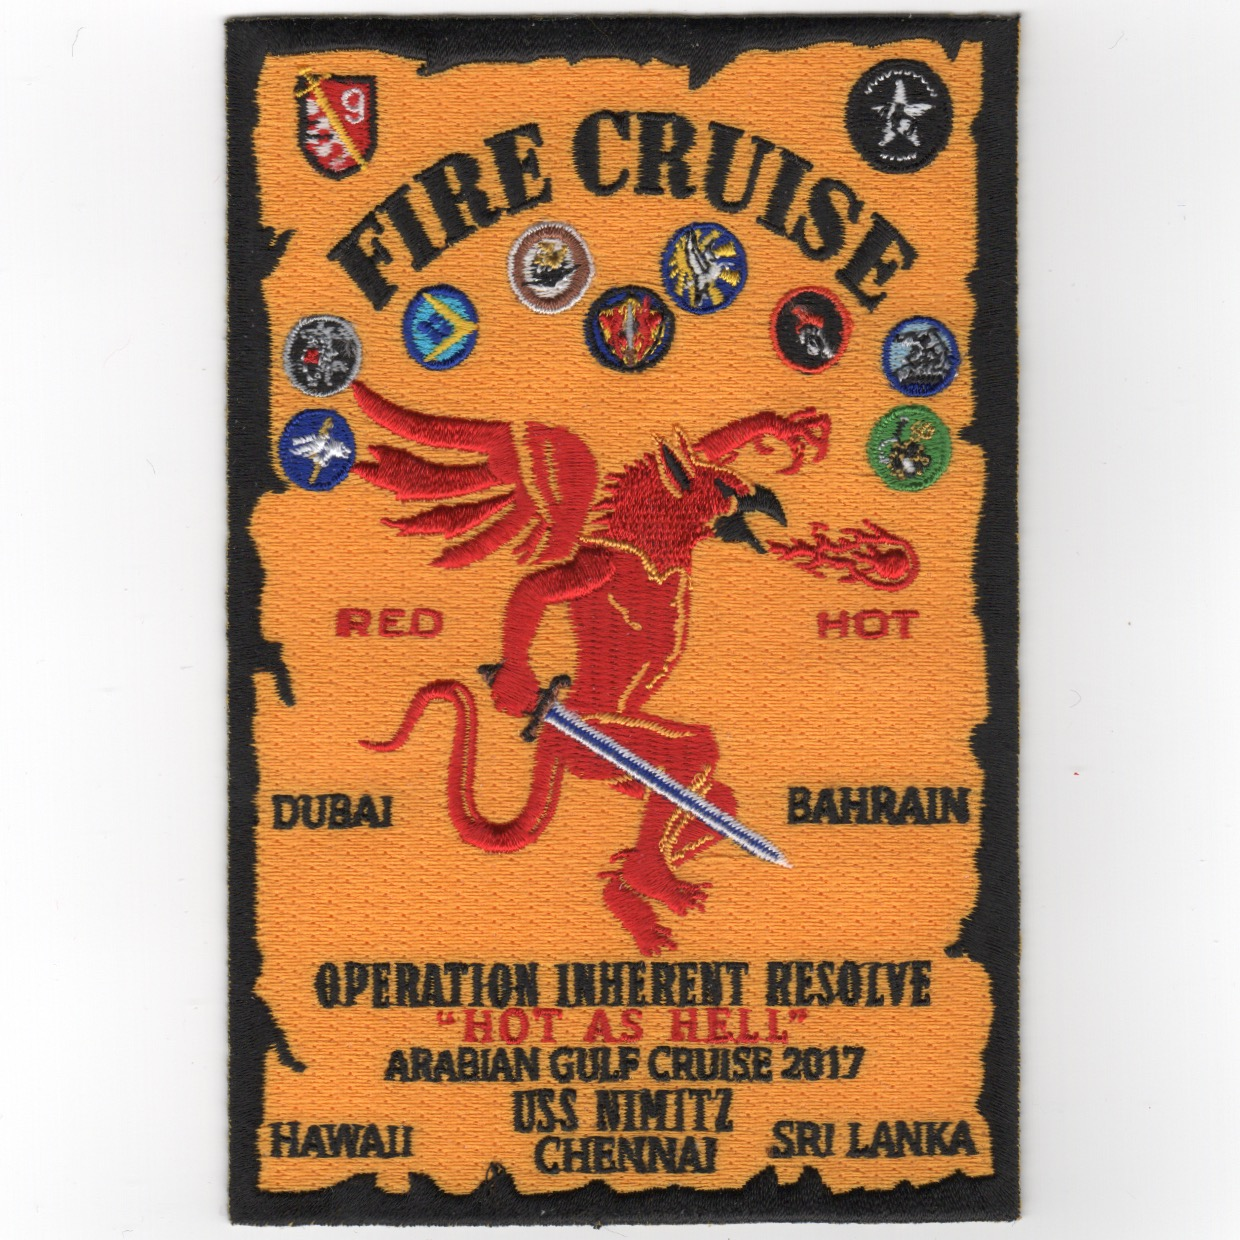 VFA-154/CVN-68 'FIRE CRUISE' Patch (Yellow)